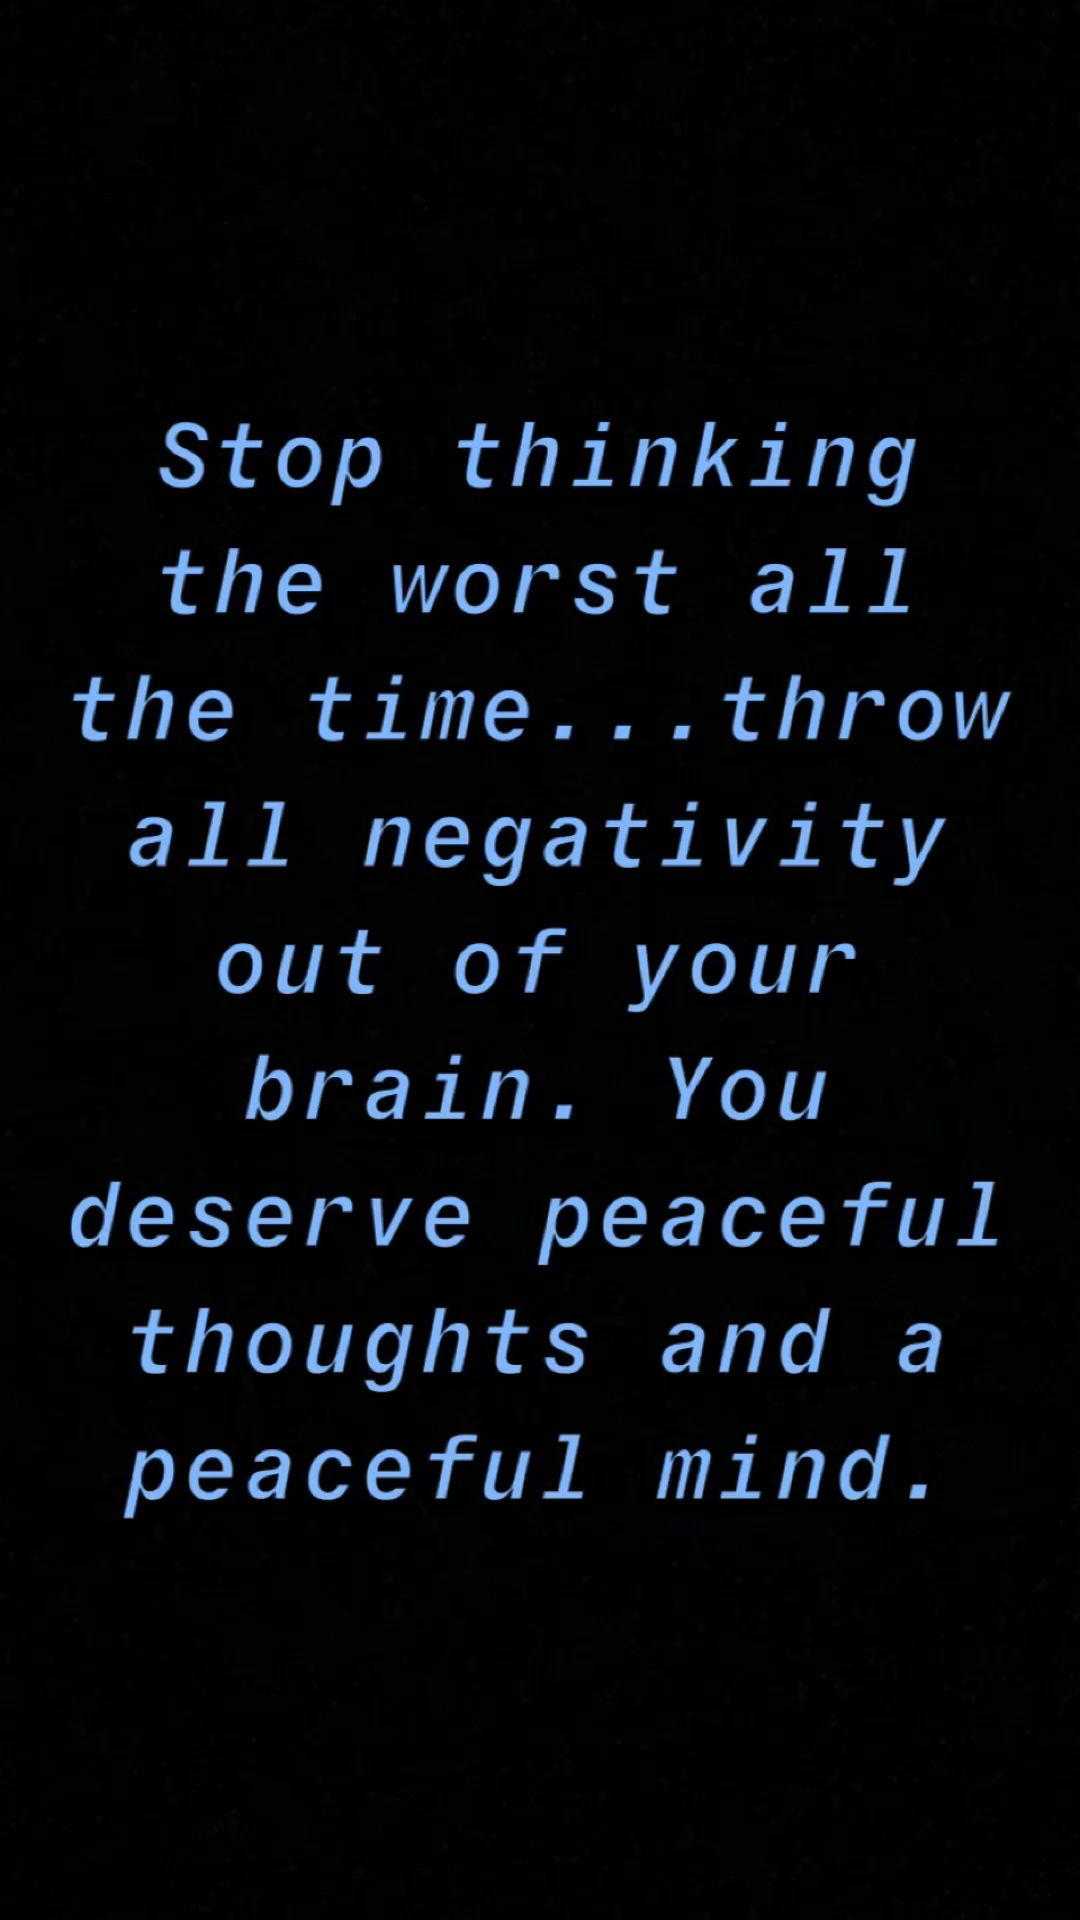 Stop thinking the worst all the time...